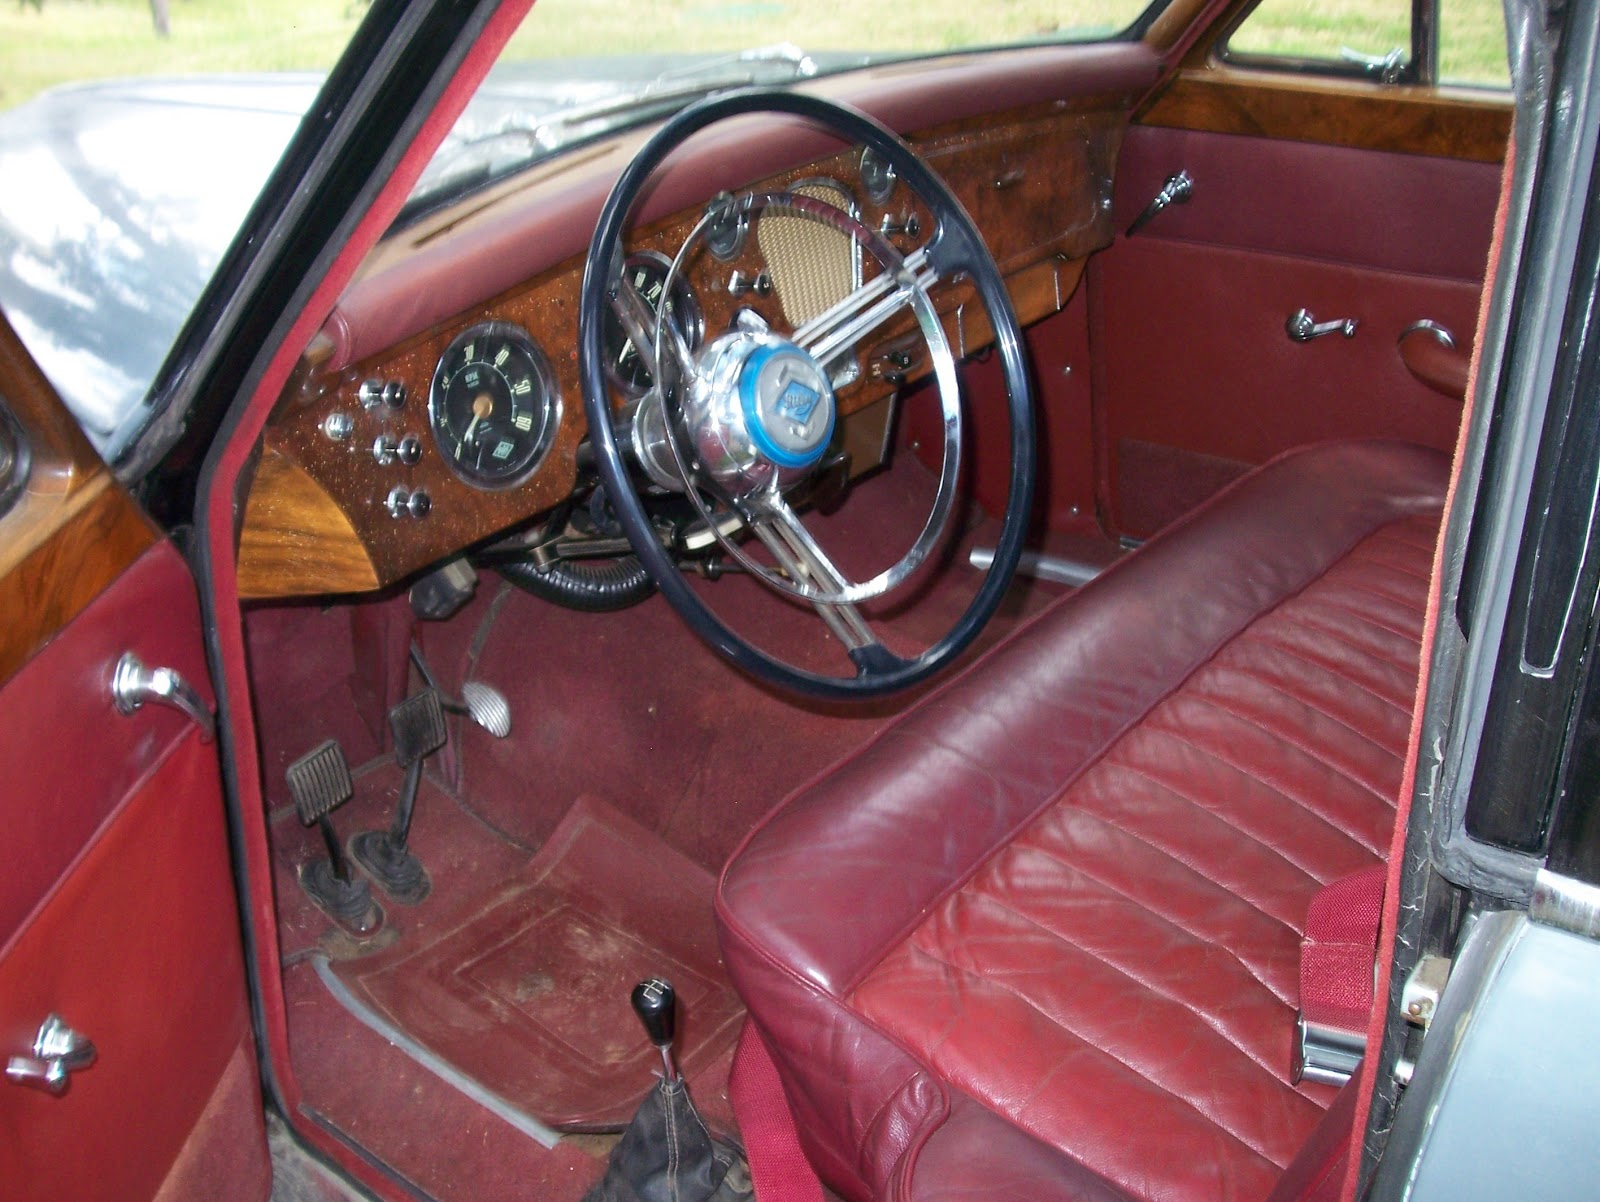 here s the interior of the riley 2 6 from the last post note how the seat is cut away for the stubby gear lever you can just see what looks like a